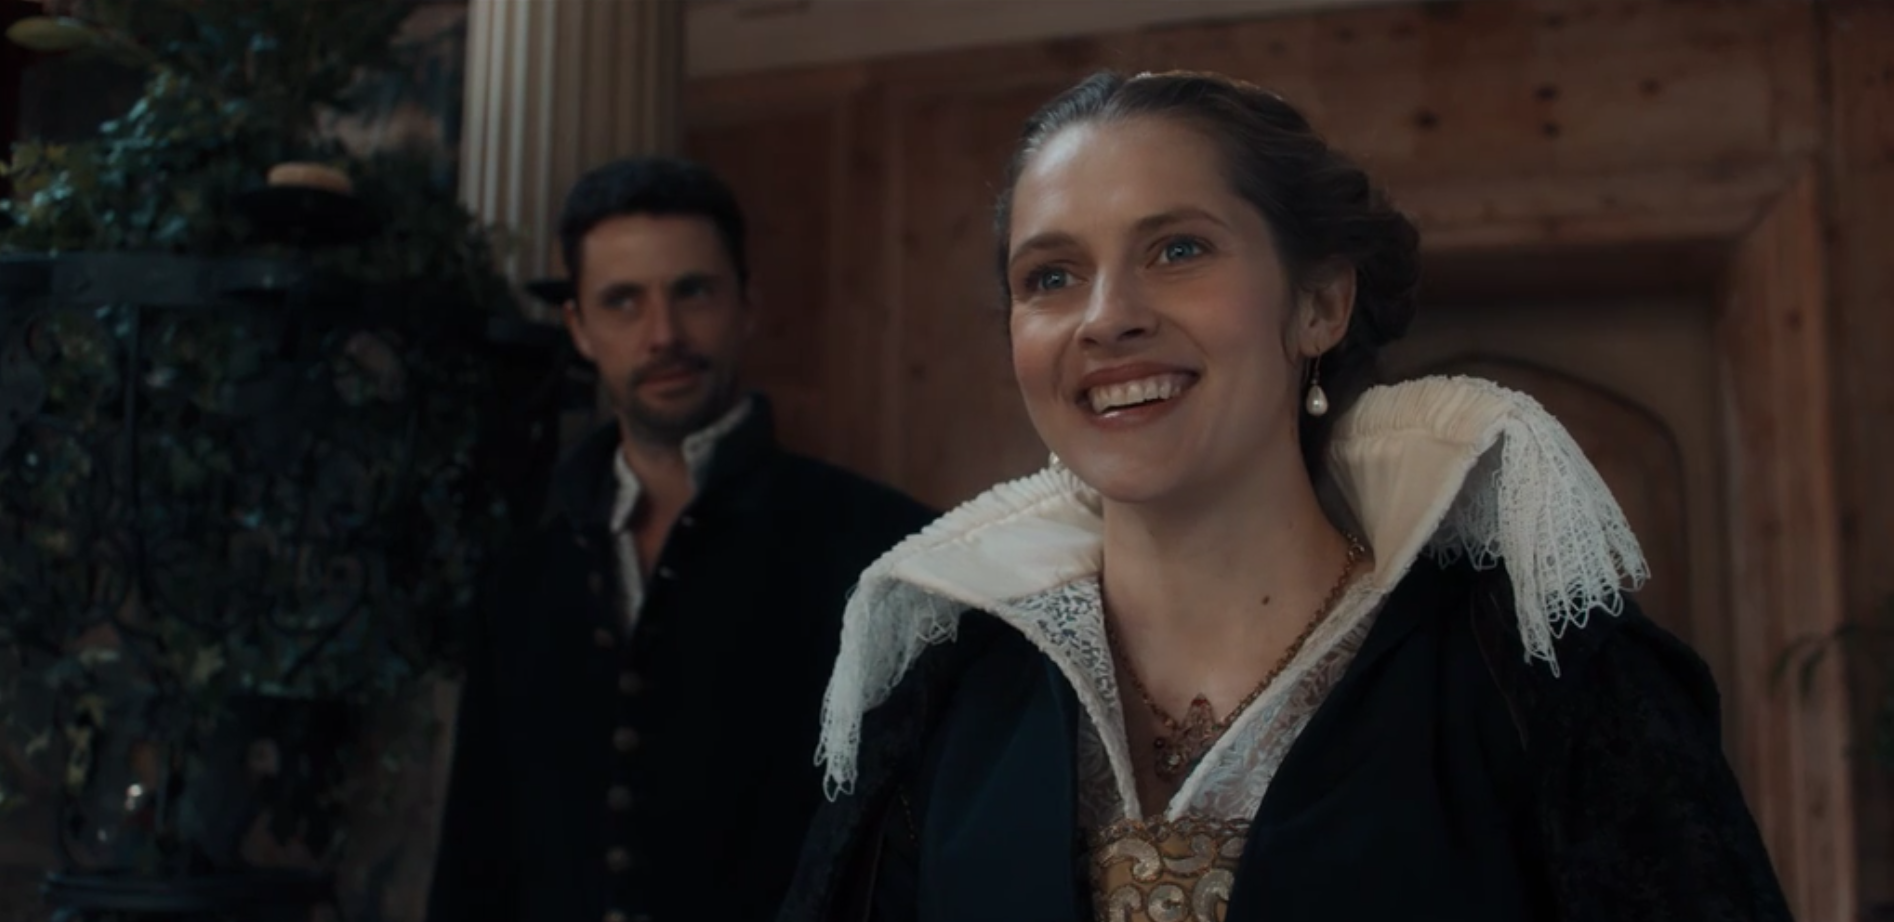 'A Discovery of Witches' 2x02 Review: The Princess Finds Her Power in This One